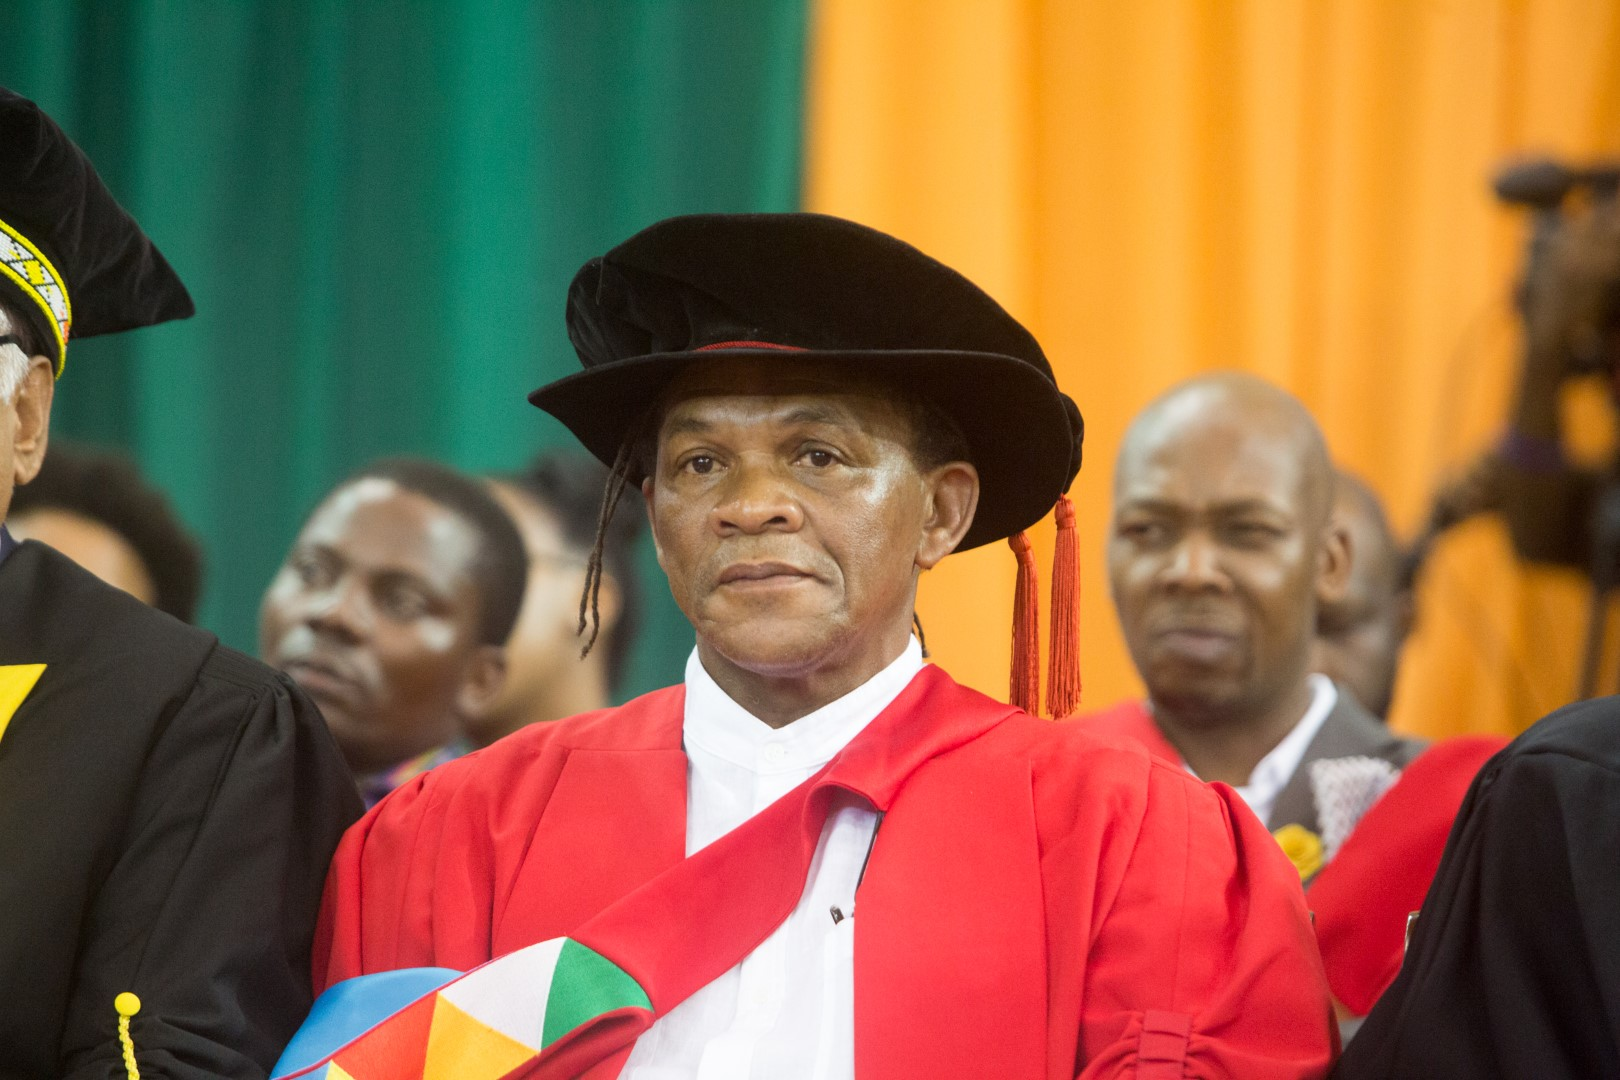 Honorary Doctorate recipient Dr Willie Bester